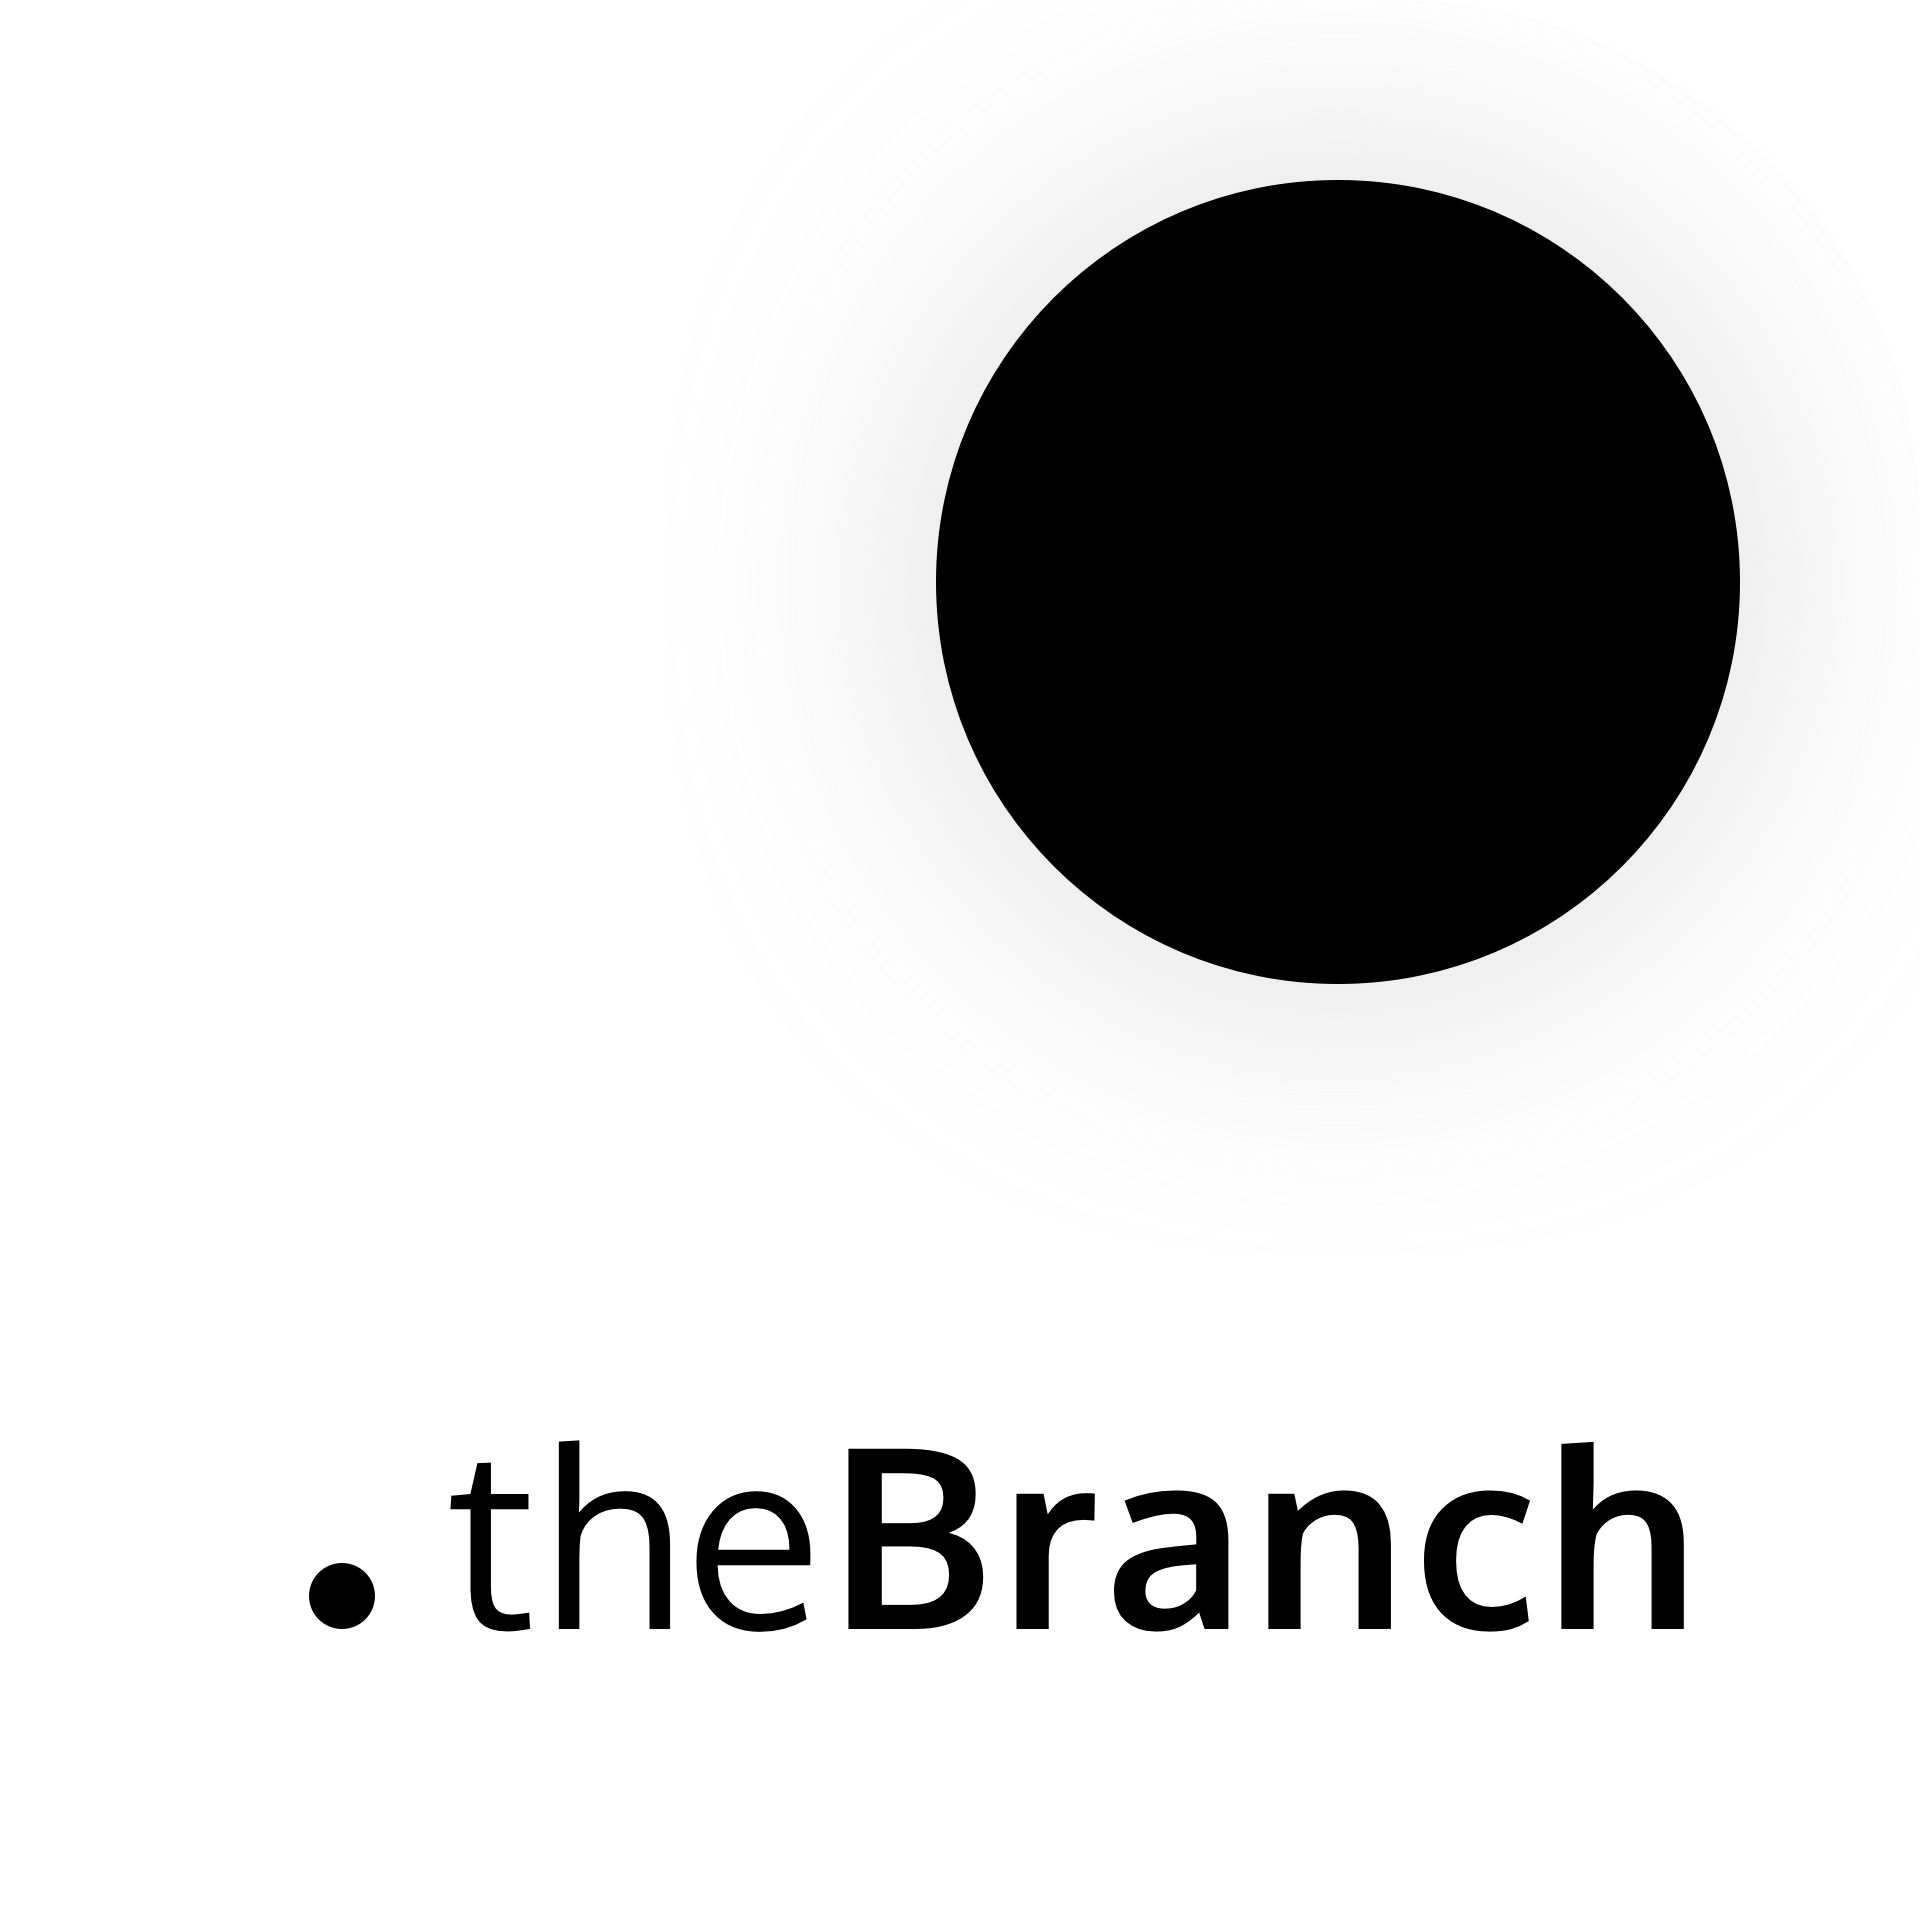 Introducing theBranch: Providing a Fast & Easy Solution for Anyone Wanting to Start an Online Business